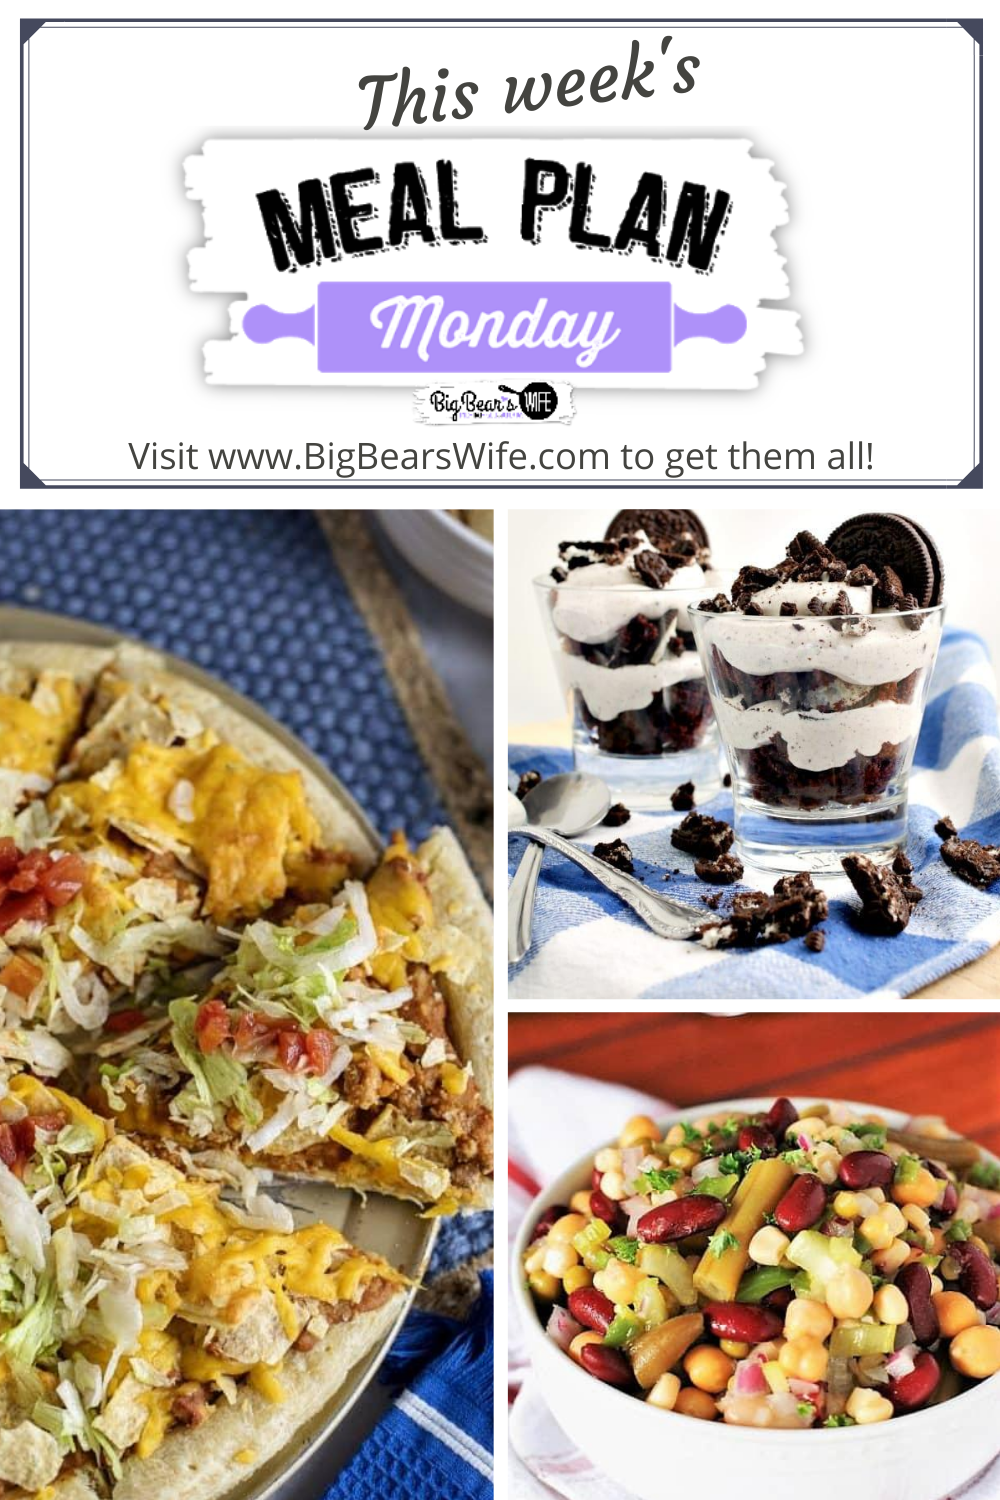 Meal Plan Monday 226 featuring recipes like, Sourdough Lemon Blueberry Muffins, Oreo Parfaits, Marinated Many Bean Salad and Taco Pizza.  via @bigbearswife